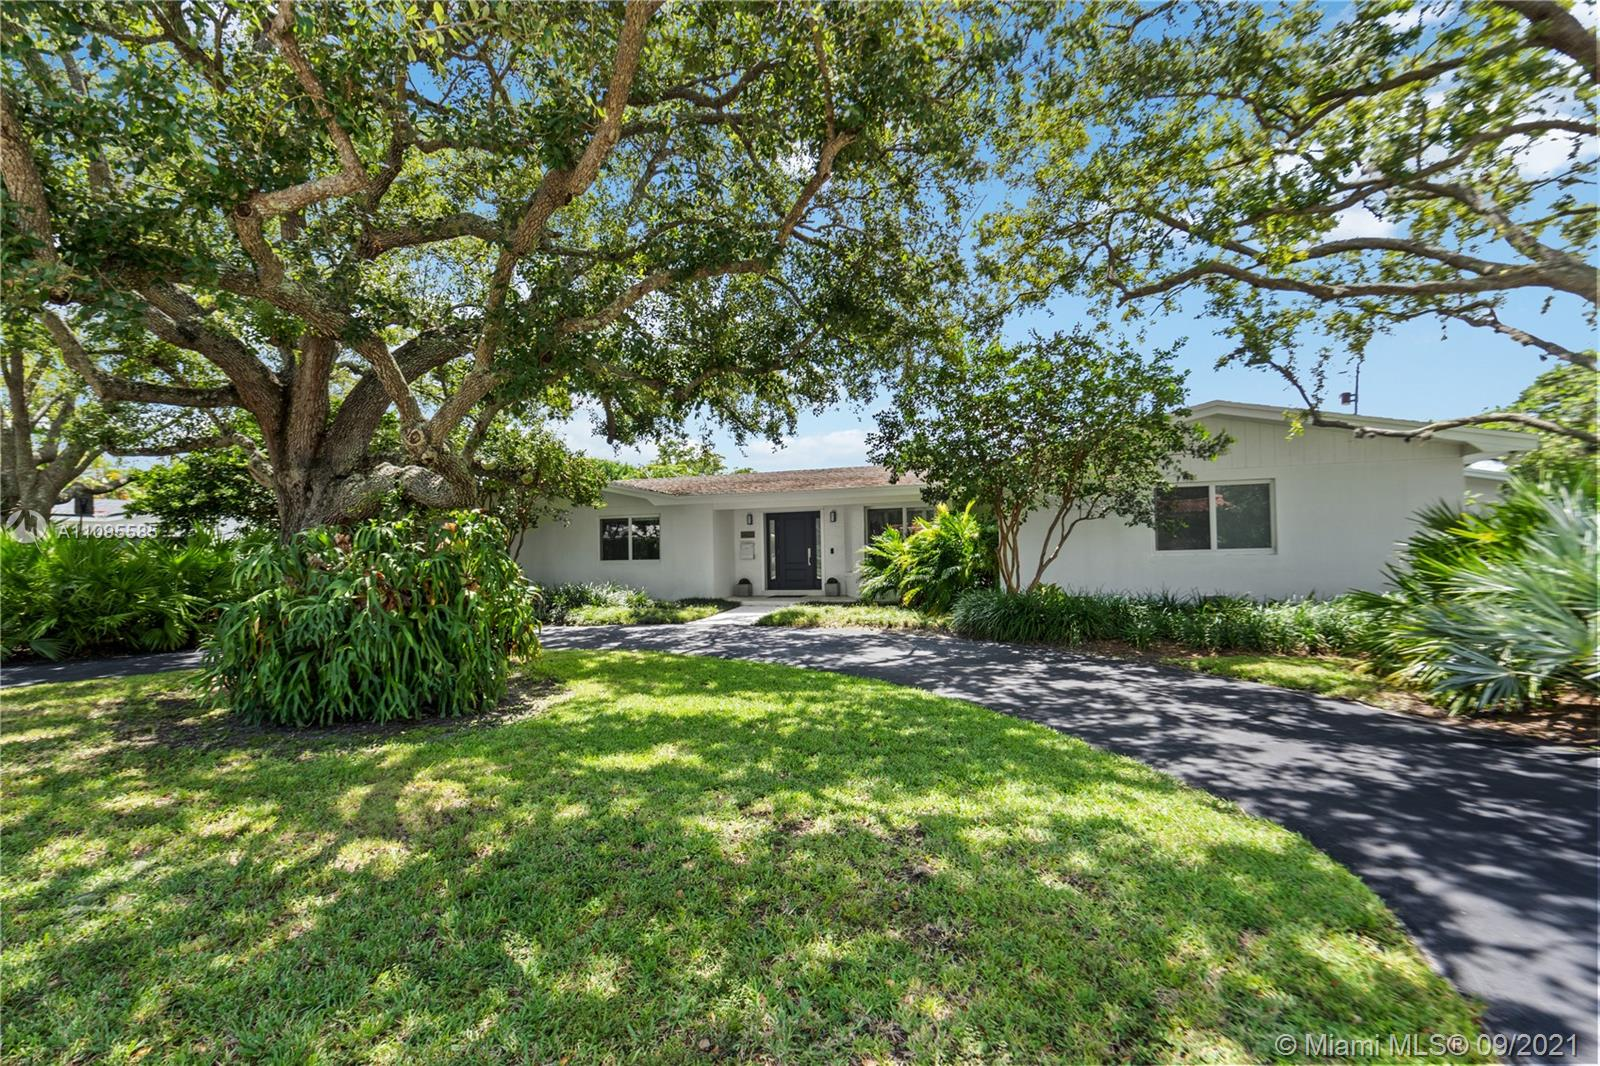 This beautiful 4 be/3 ba home in North Palmetto Bay has been fully remodeled in 2016. The 3,159 SF home comes with spacious living & dining areas, an office, a separate family room as well as a remodeled kitchen and bathrooms. Additional upgrades include wood-like ceramic floors, a separate laundry room, multi-slide living room doors that open up into the garden, all new impacts windows & doors, new Bedroom A/Cs ('18), new A/C Ducts, new PVC sewer lines and a Security system NVR with 5 cameras.  The 15.128 SF tropically landscaped lot offers a pool (remodeled in 2018 w/ new pipes & heating system), a covered terrace, landscape lights, a new wood fence ('18) as well as a 2-car garage and septic tank.